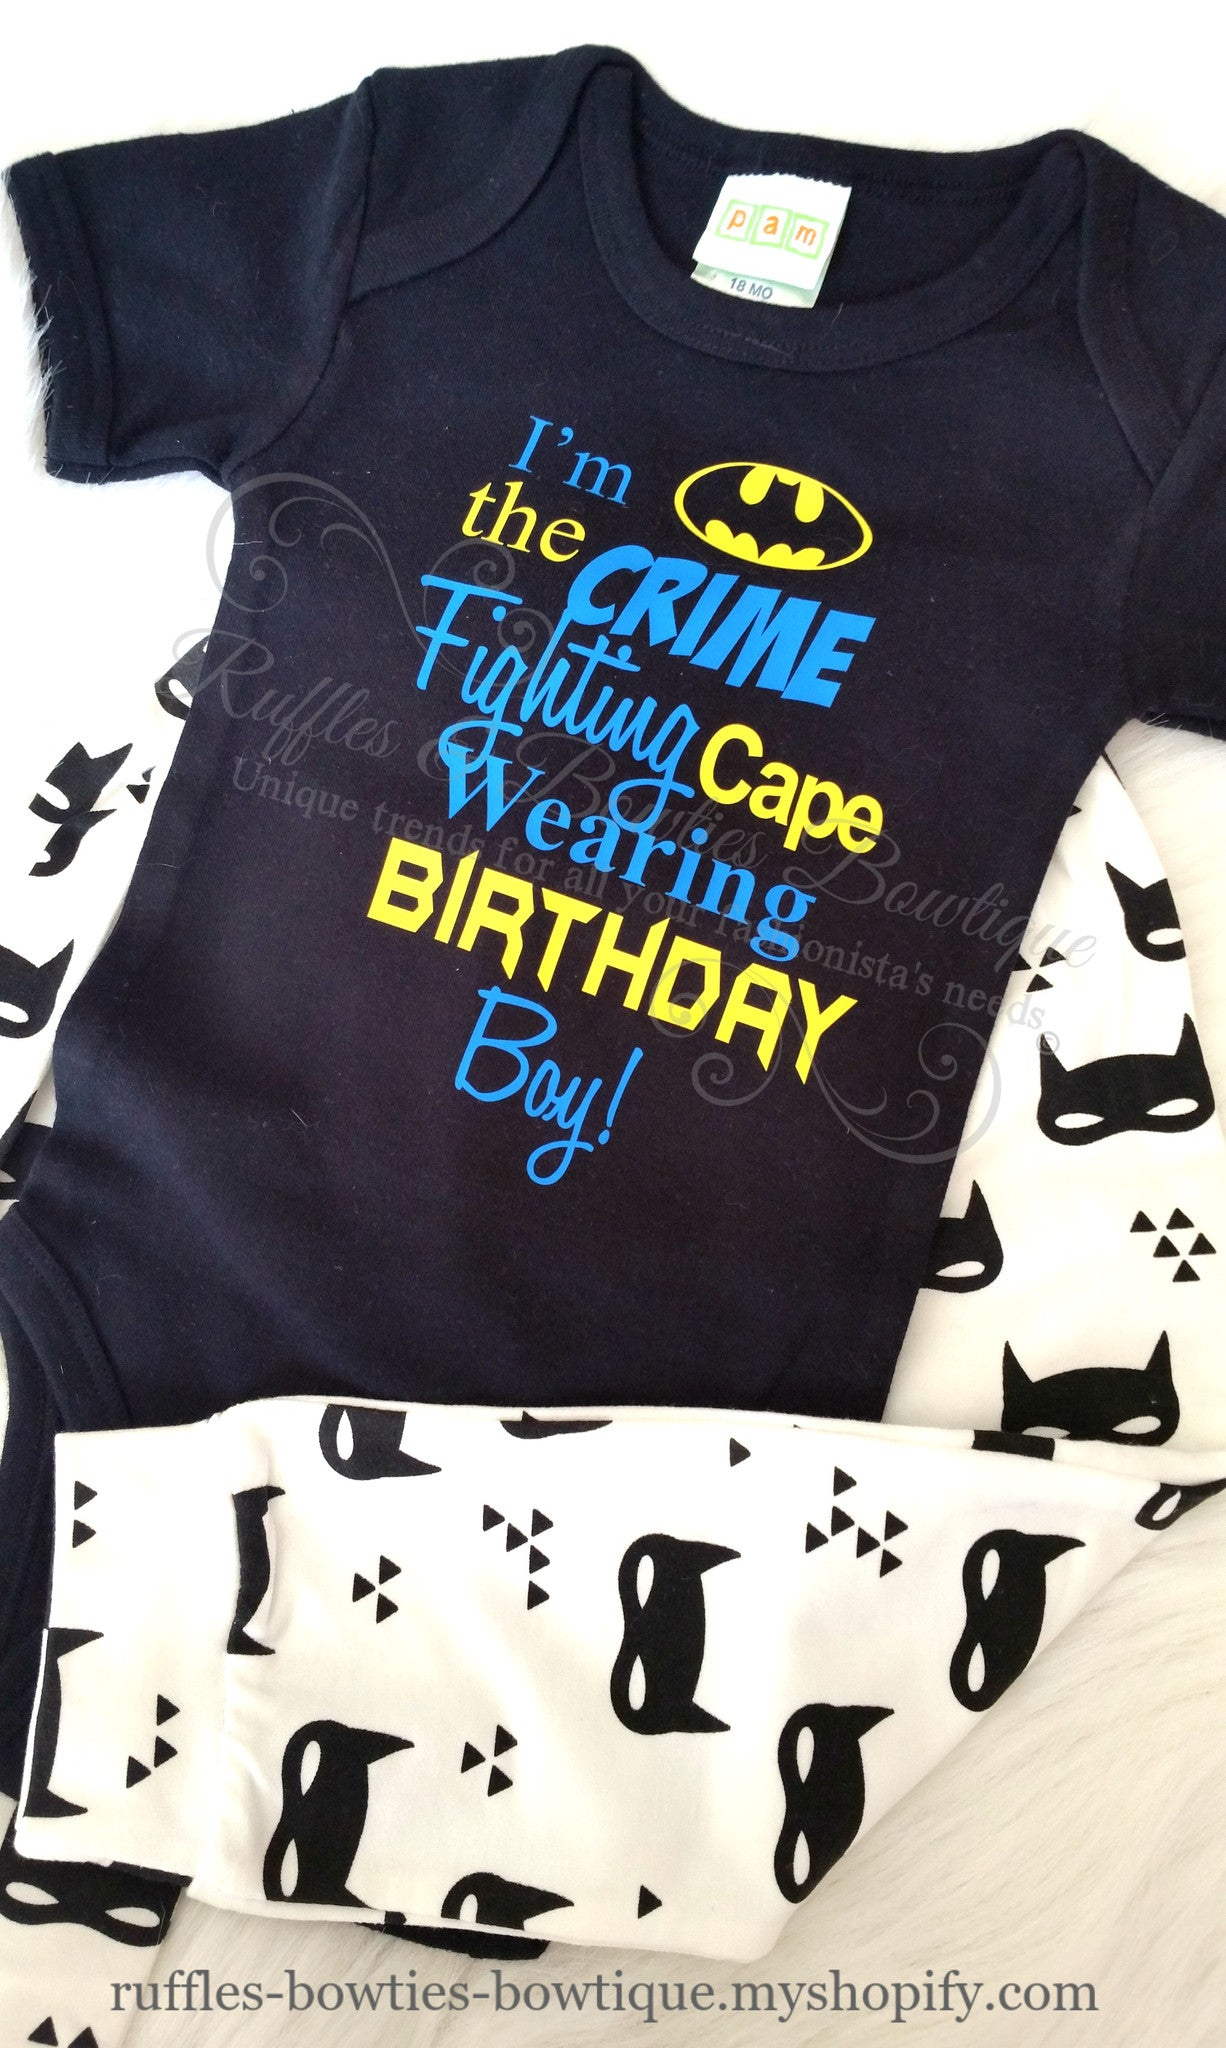 Bat man Birthday Shirt Im a the crime Fighting Cape Wearing Birthday